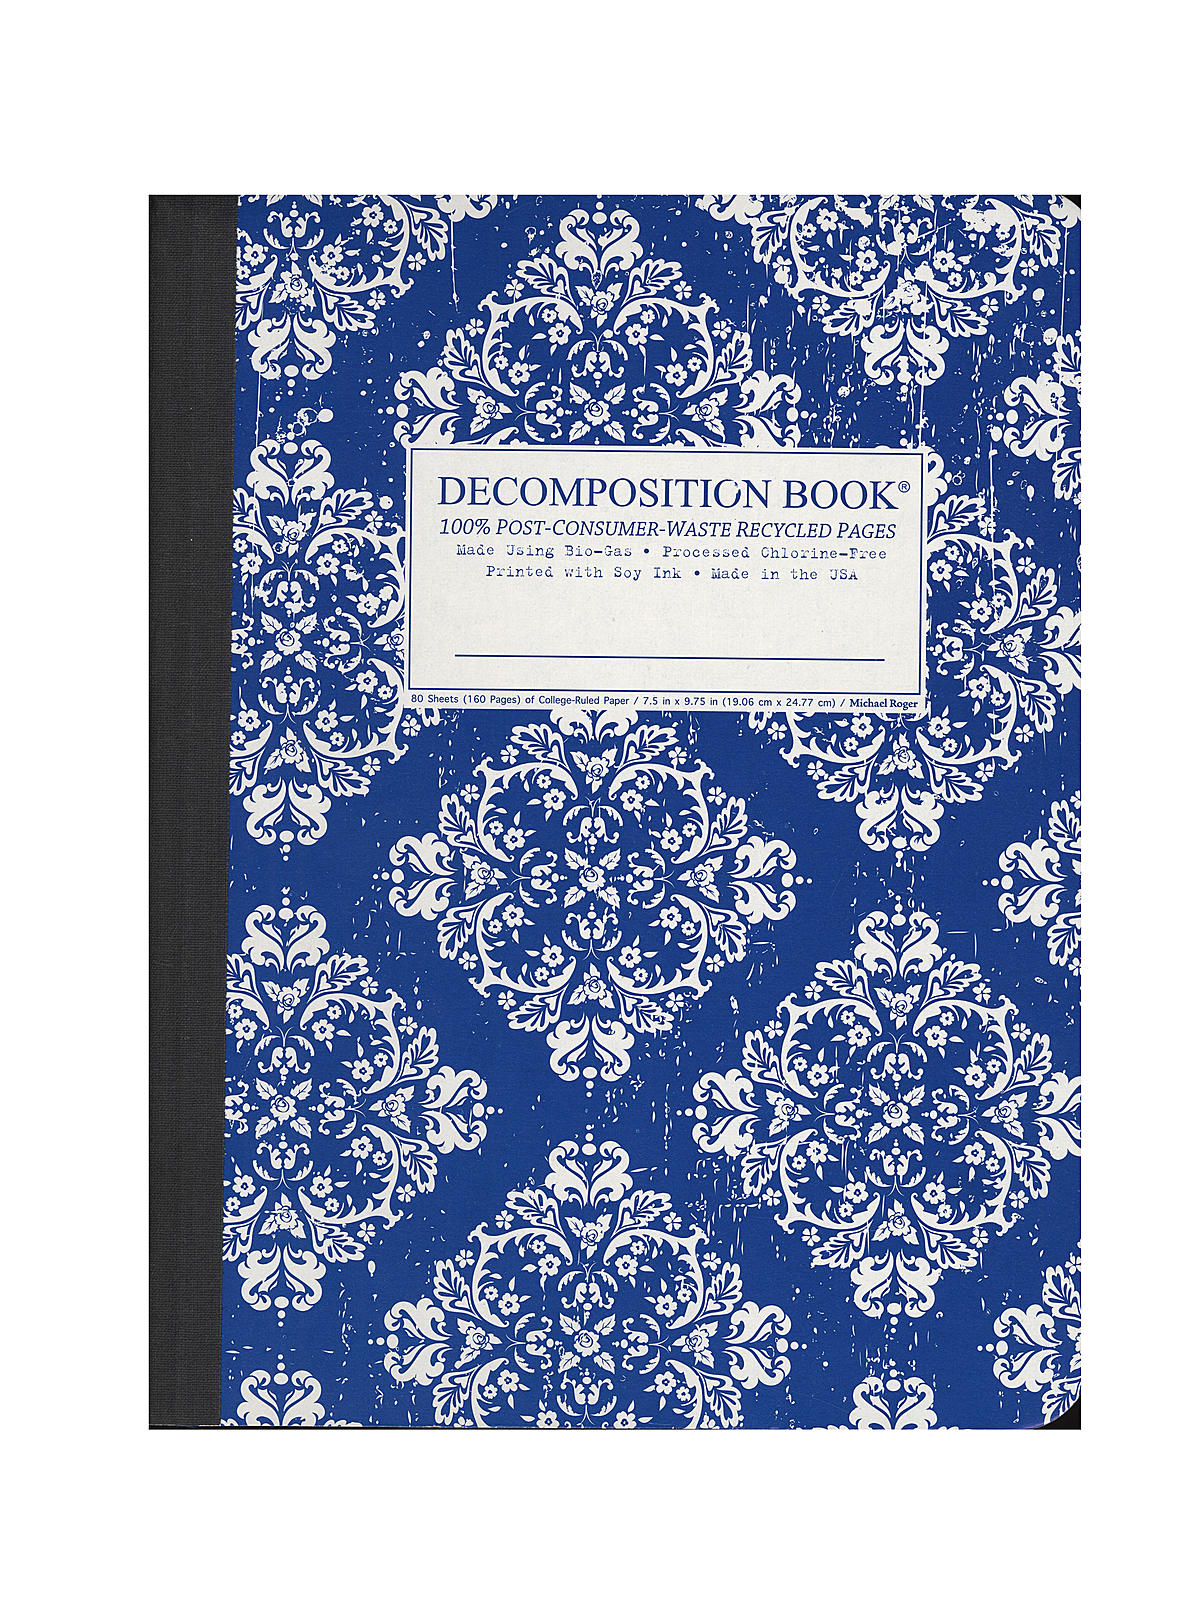 Decomposition Book Victoria Blue - 2211de5ddb84292 , Decomposition-Book-Victoria-Blue-13708576 , Decomposition Book Victoria Blue , Array , 13708576 , Gift Ideas , 04359